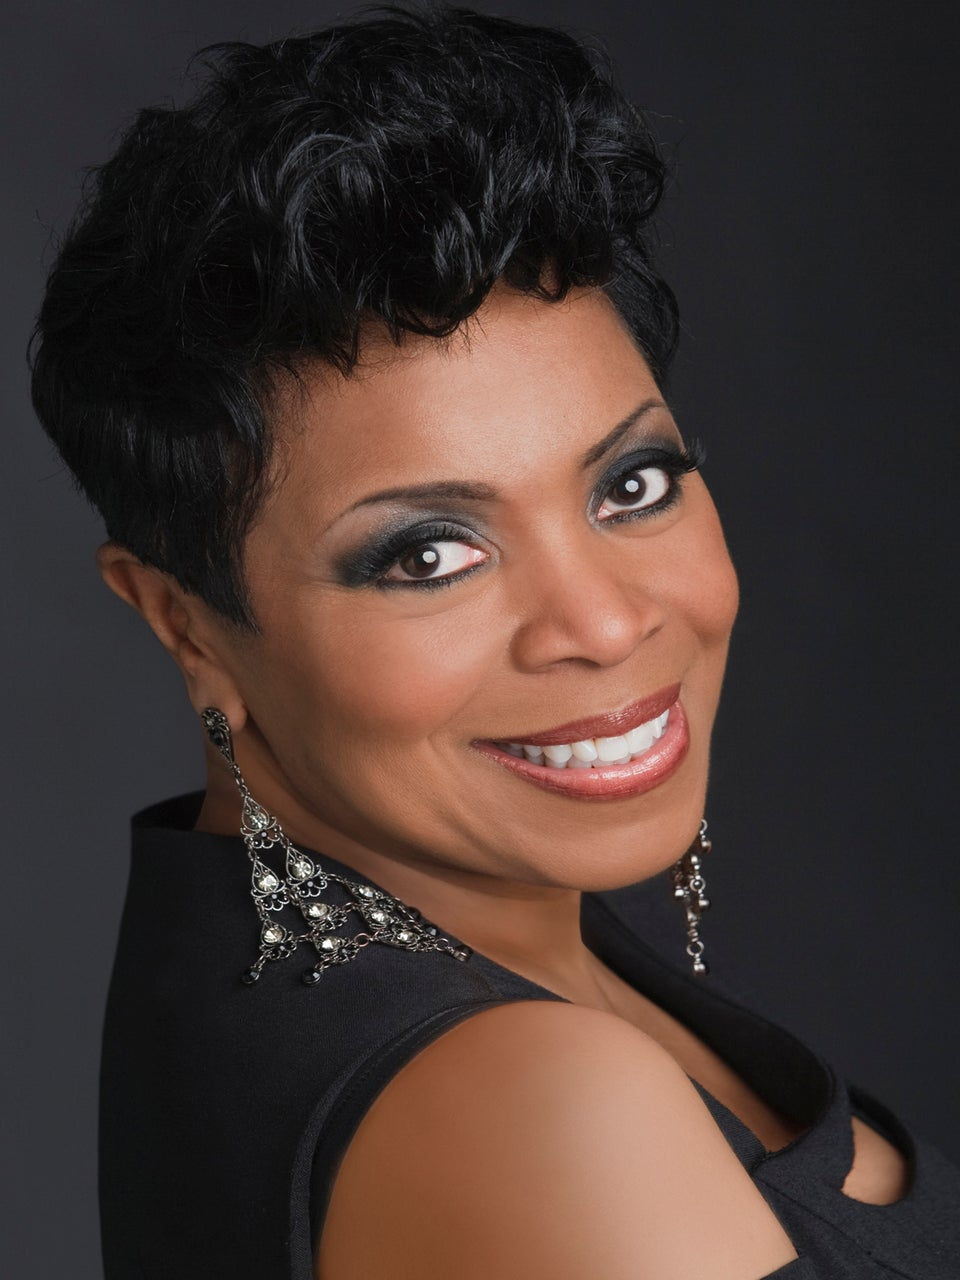 #WEW: Meet Shirley Strawberry, Our Real Life On-Air Superwoman